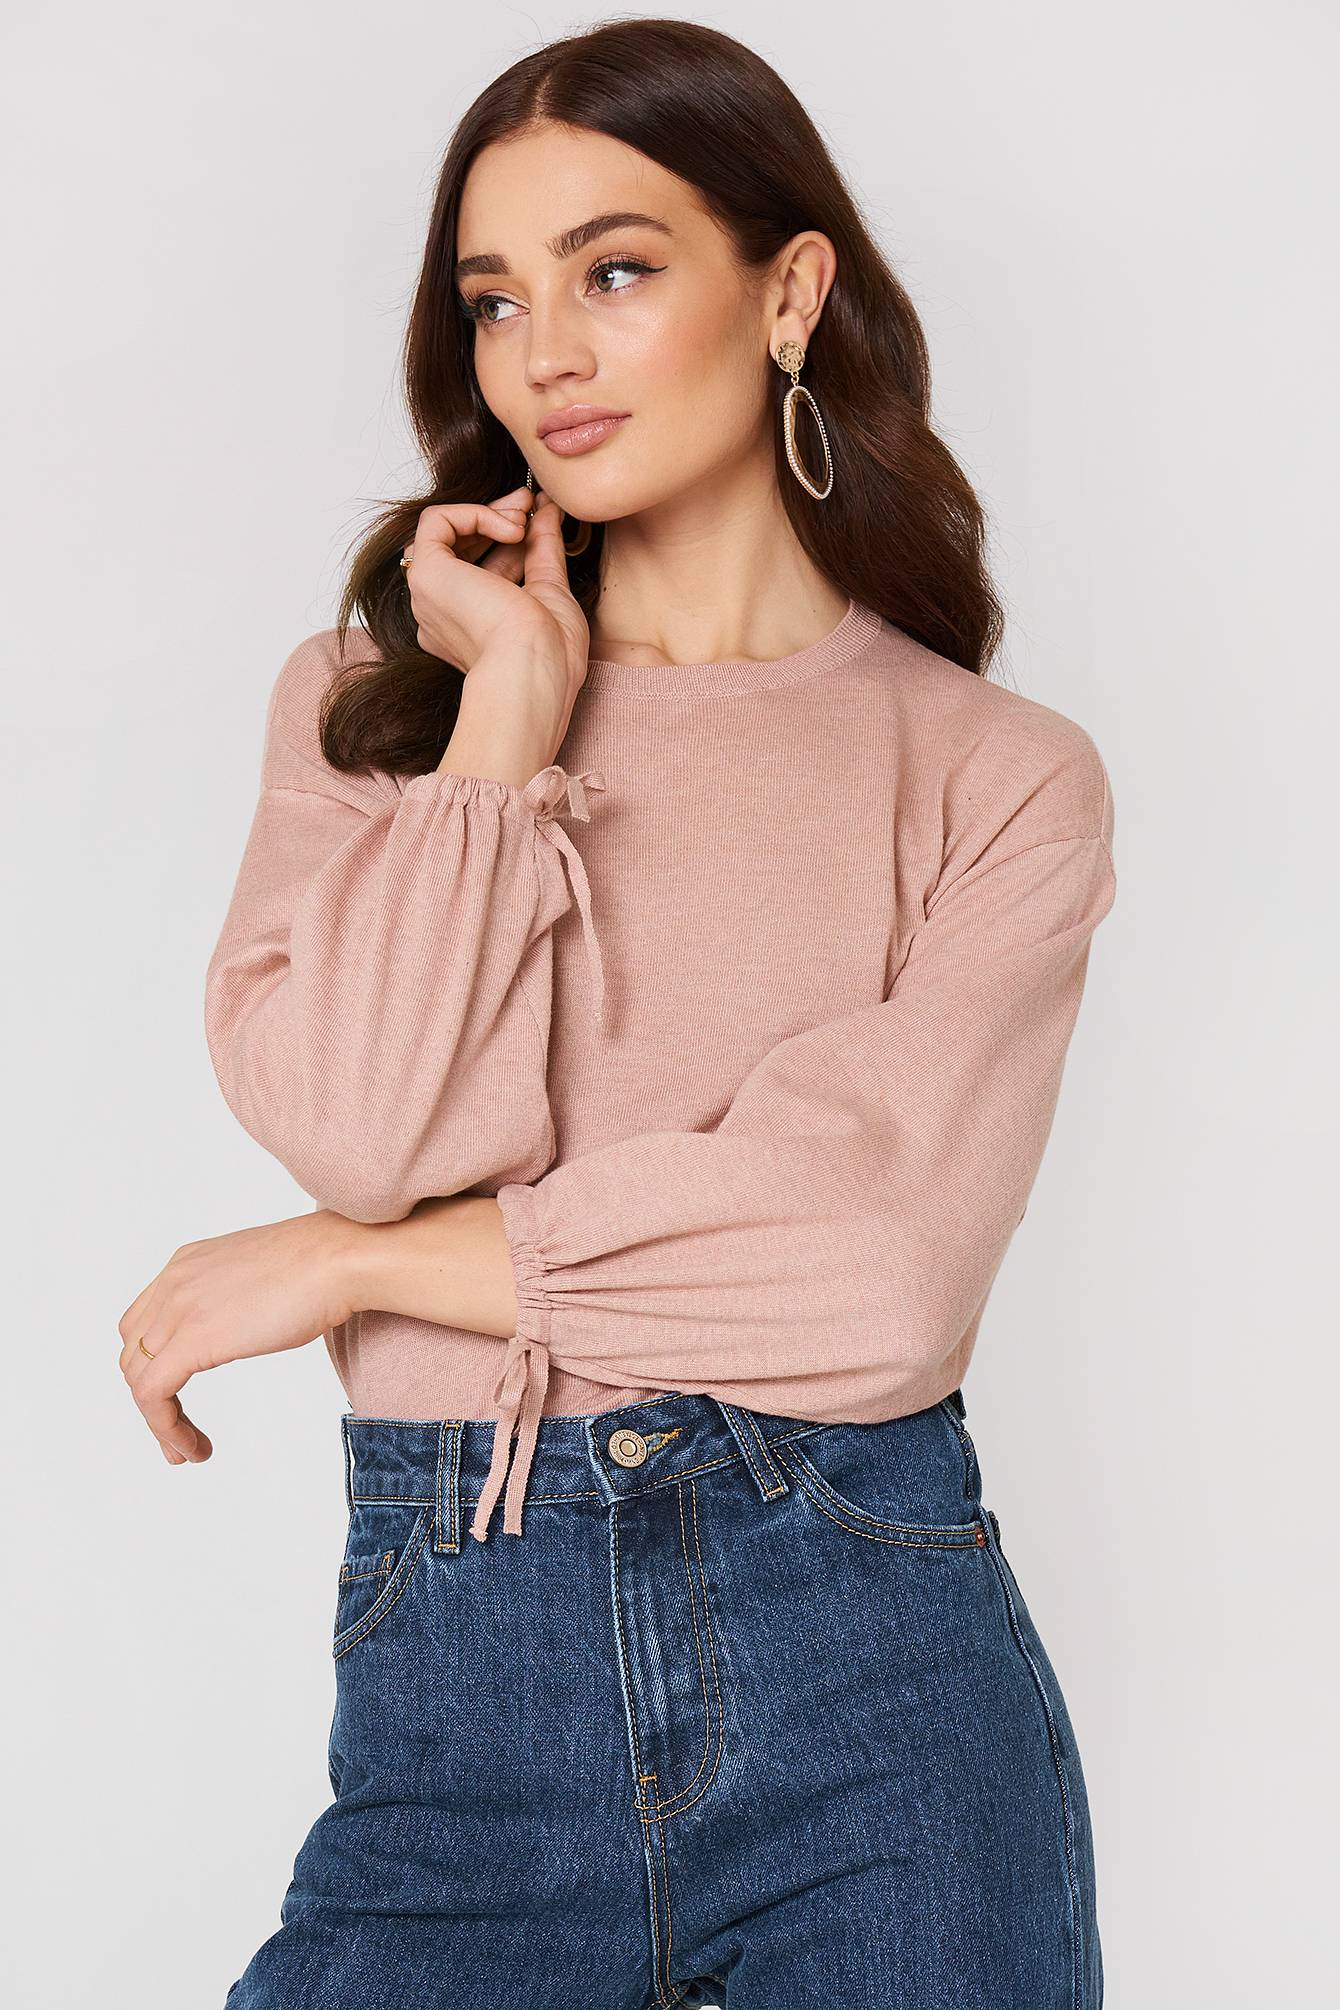 MANGO Puffed Sleeves Sweater - Pink